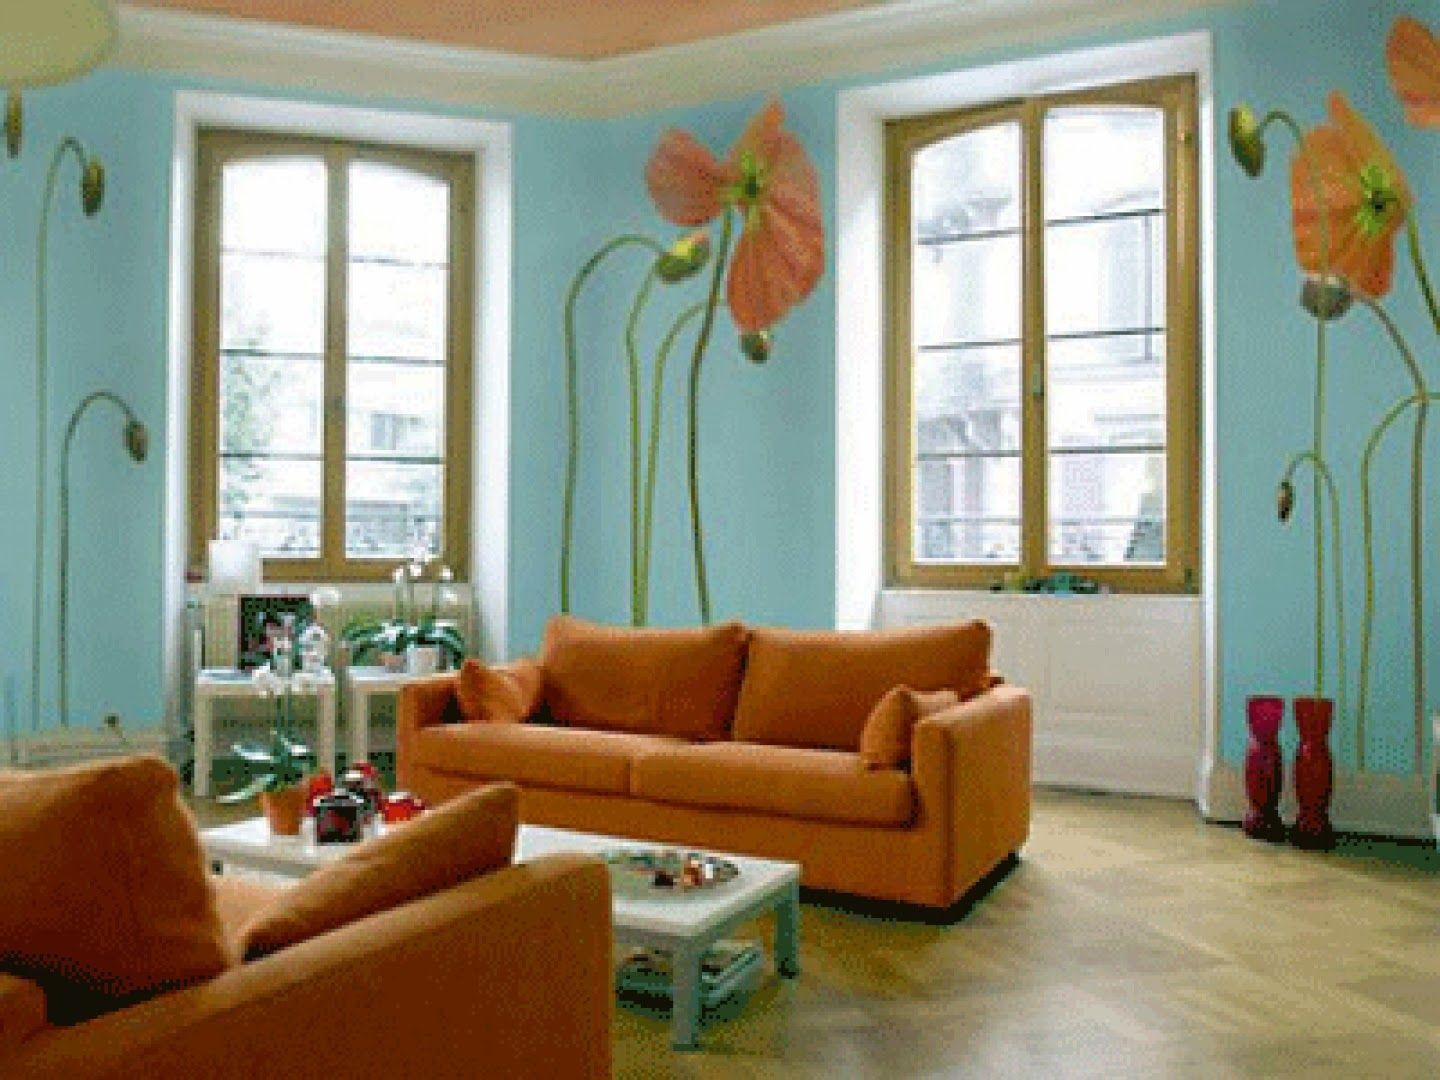 Blue and orange living room - Interior Awesome Living Room Decoration With Light Blue Asian Paint Wall Colors Along With